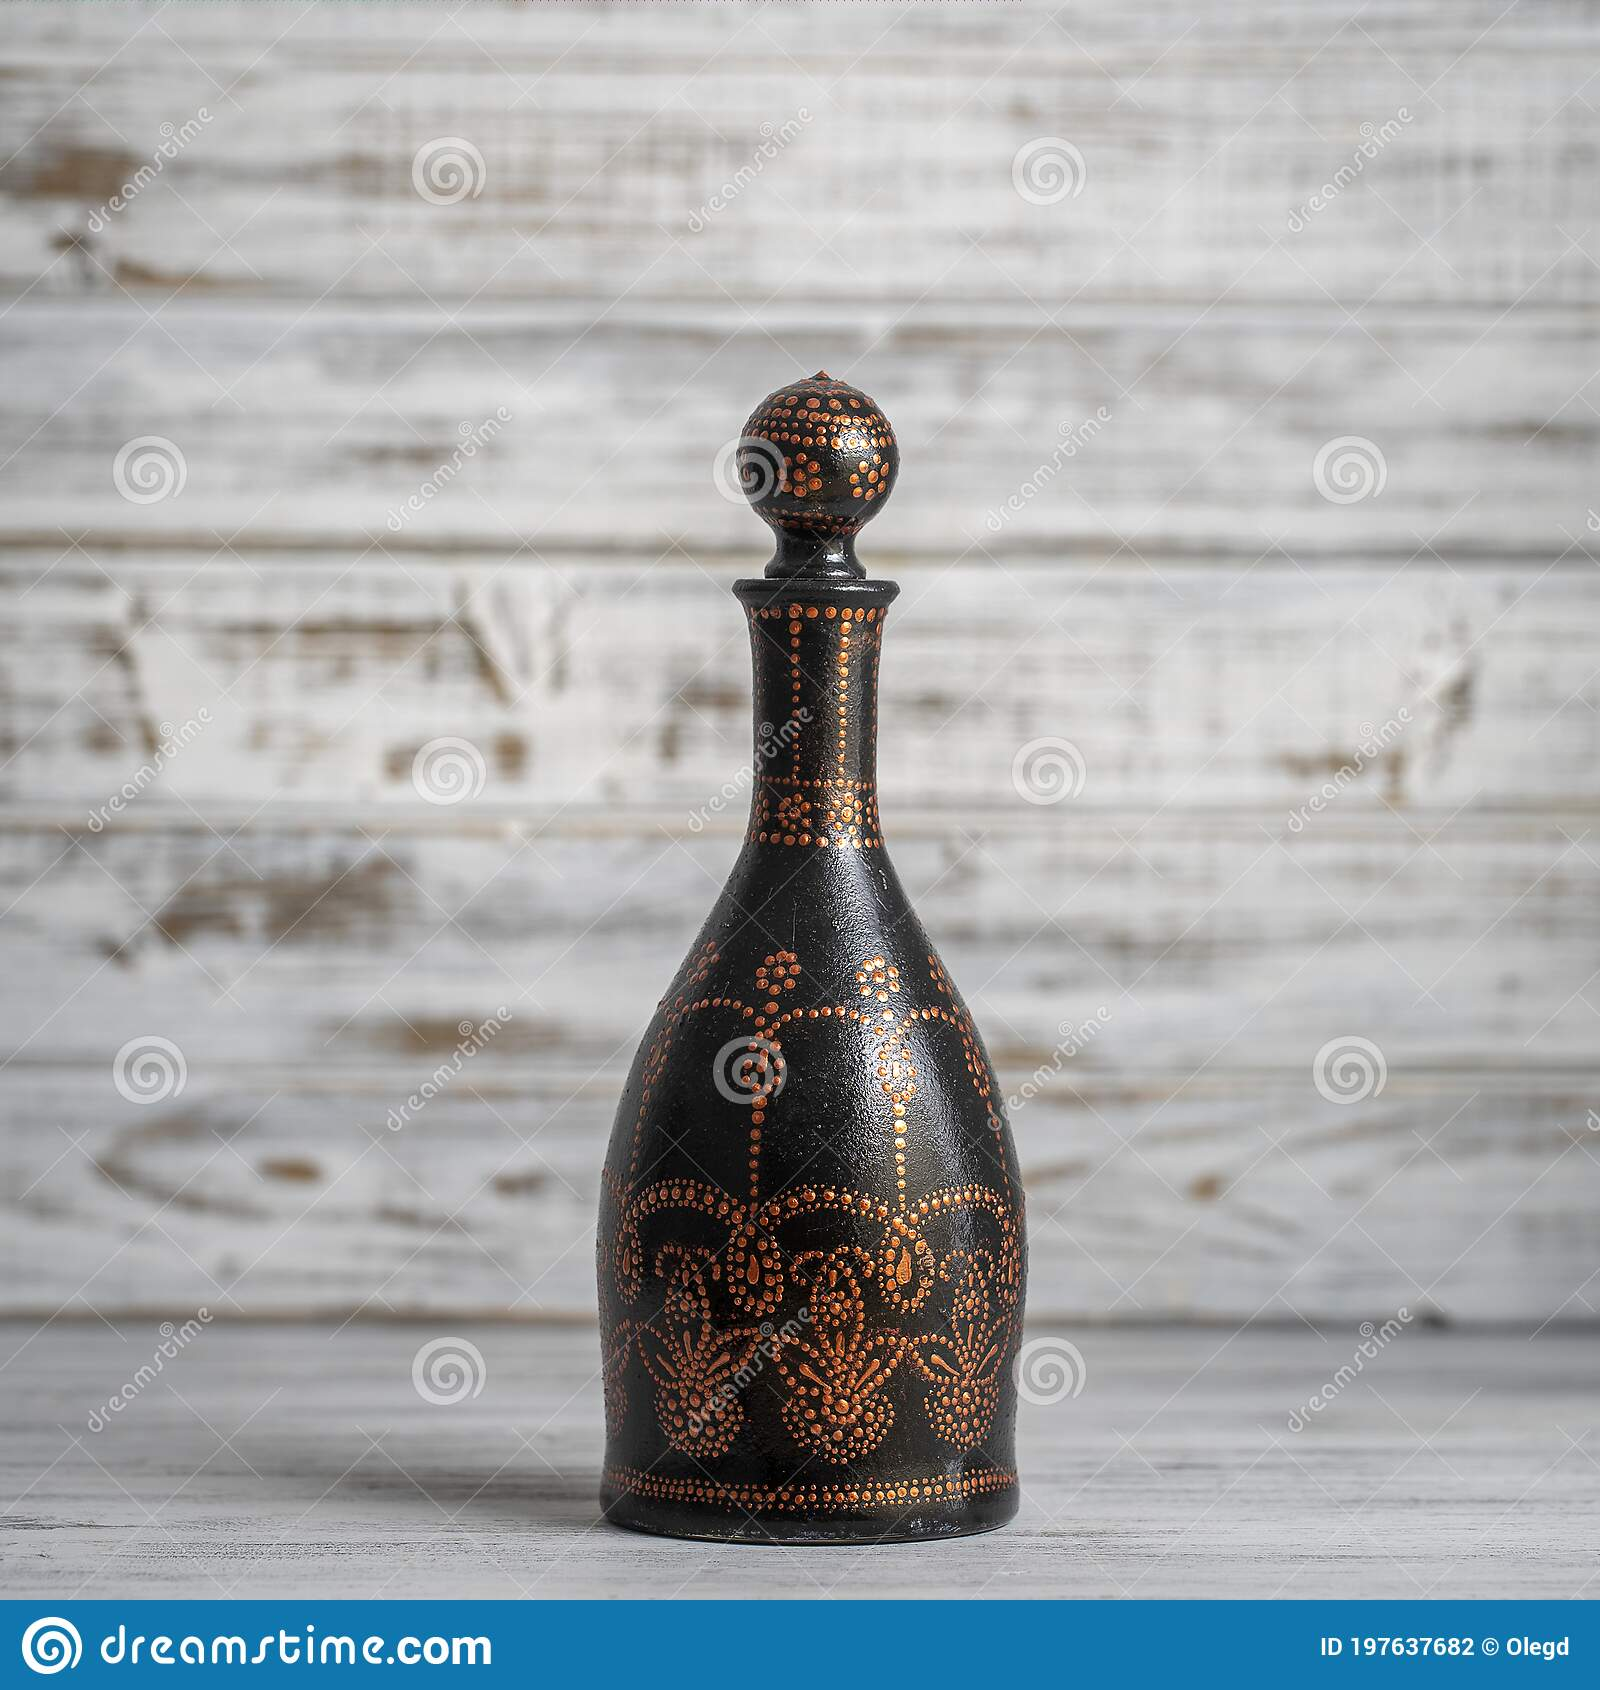 Decorative Ceramic Bottle With Black Red And Golden Colors Painted Bottle On White Wooden Background Dot Painting Stock Photo Image Of Decorative Arabic 197637682